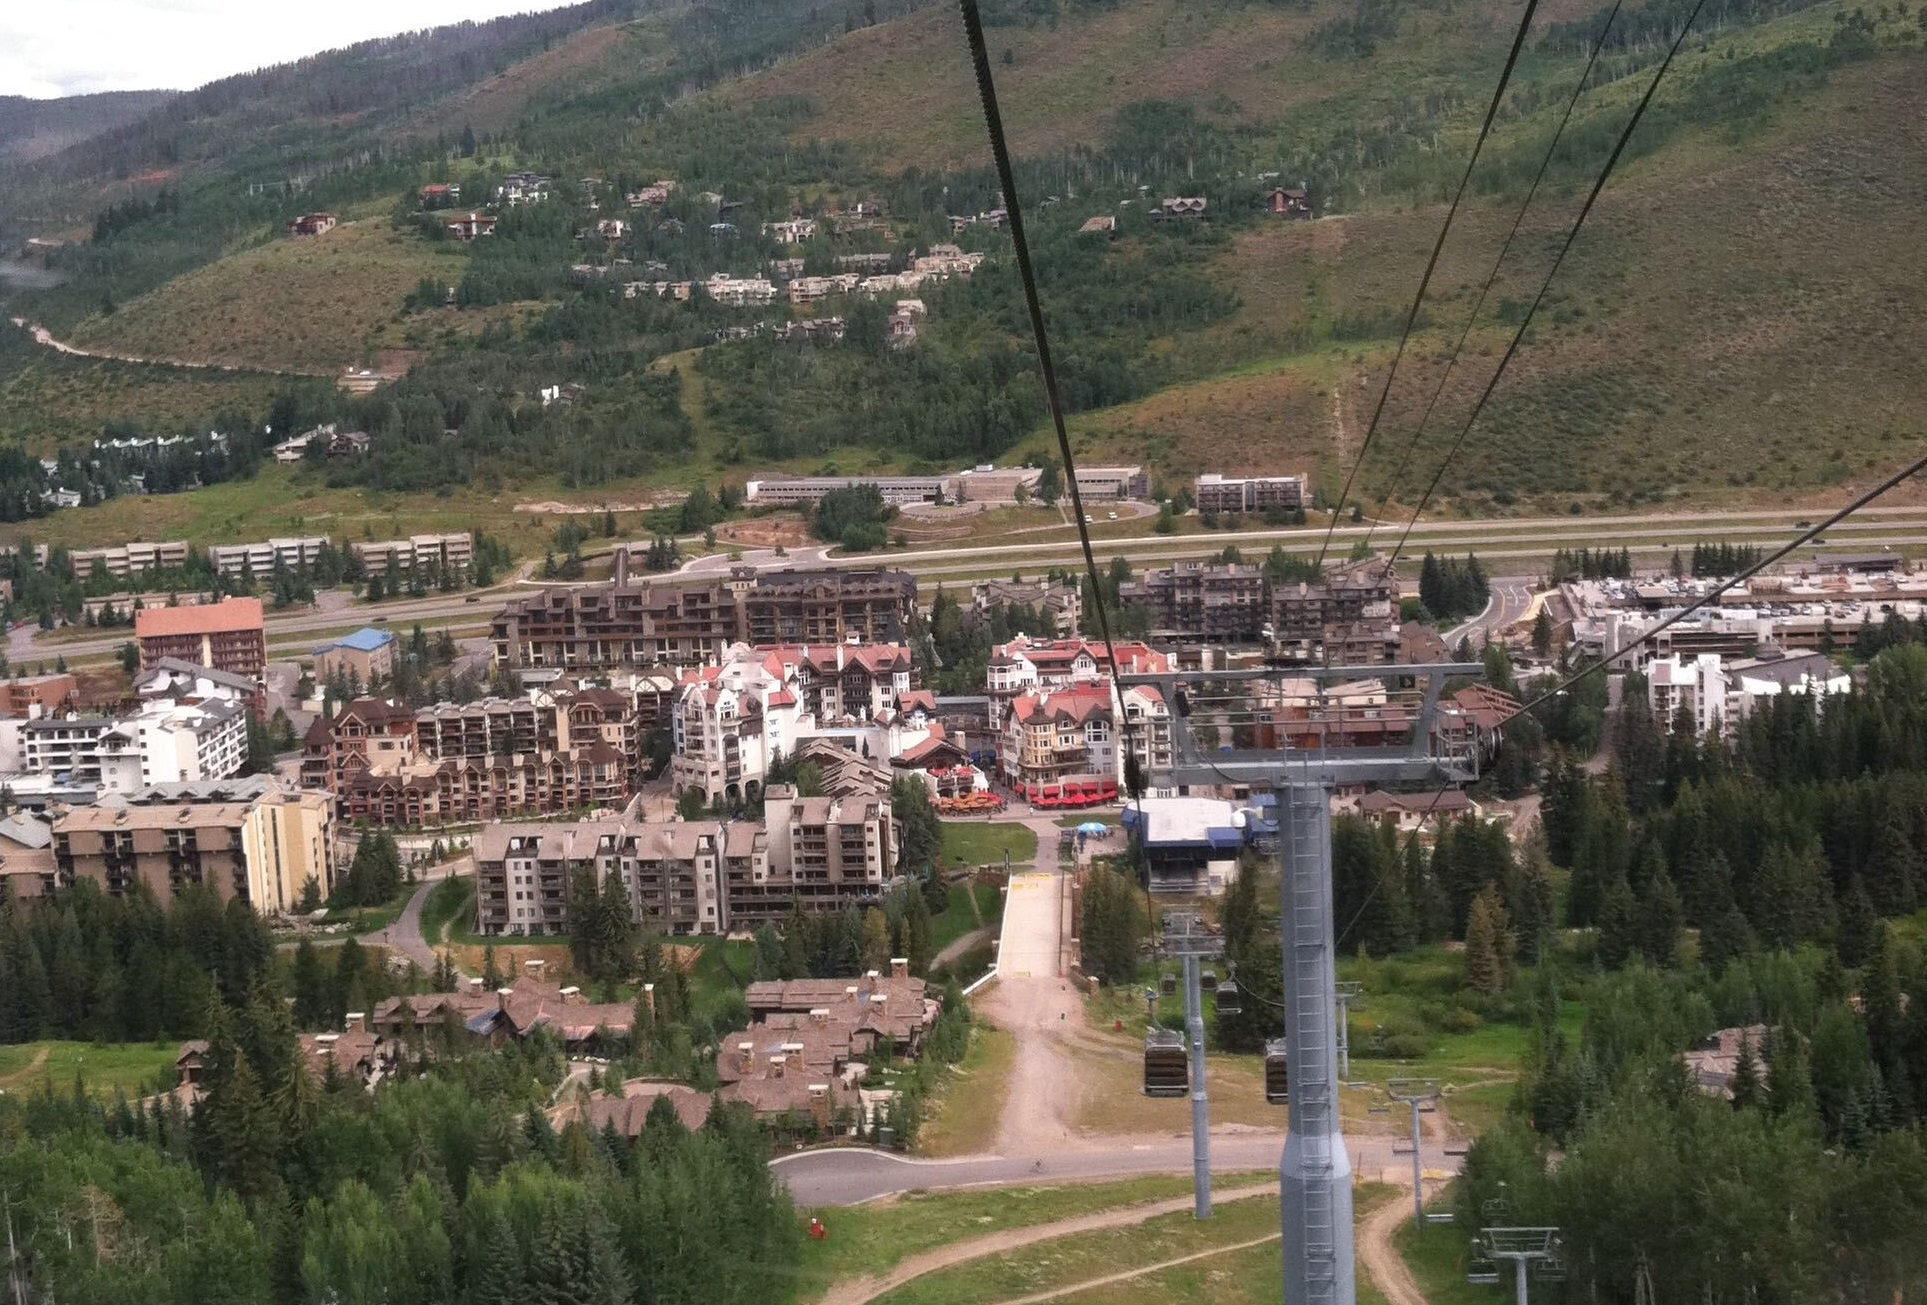 The Vail Valley